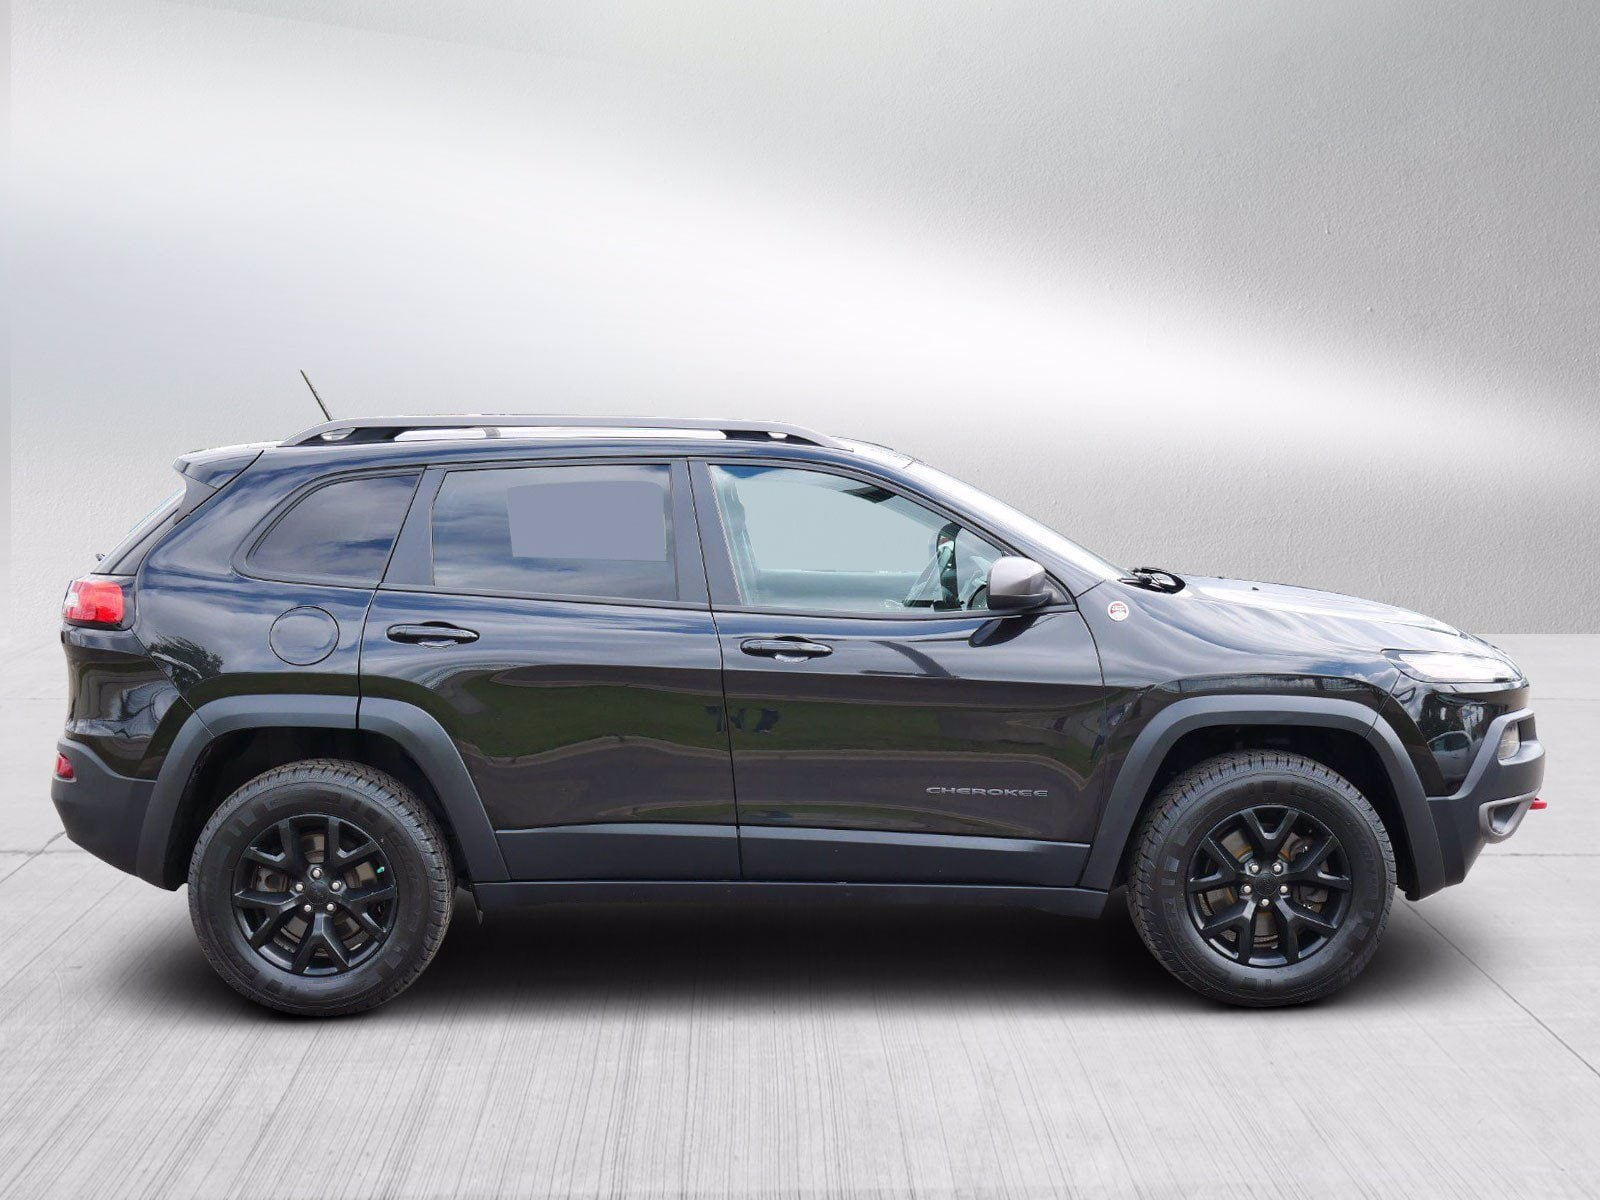 Used 2015 Jeep Cherokee Trailhawk with VIN 1C4PJMBS7FW705191 for sale in Bloomington, Minnesota